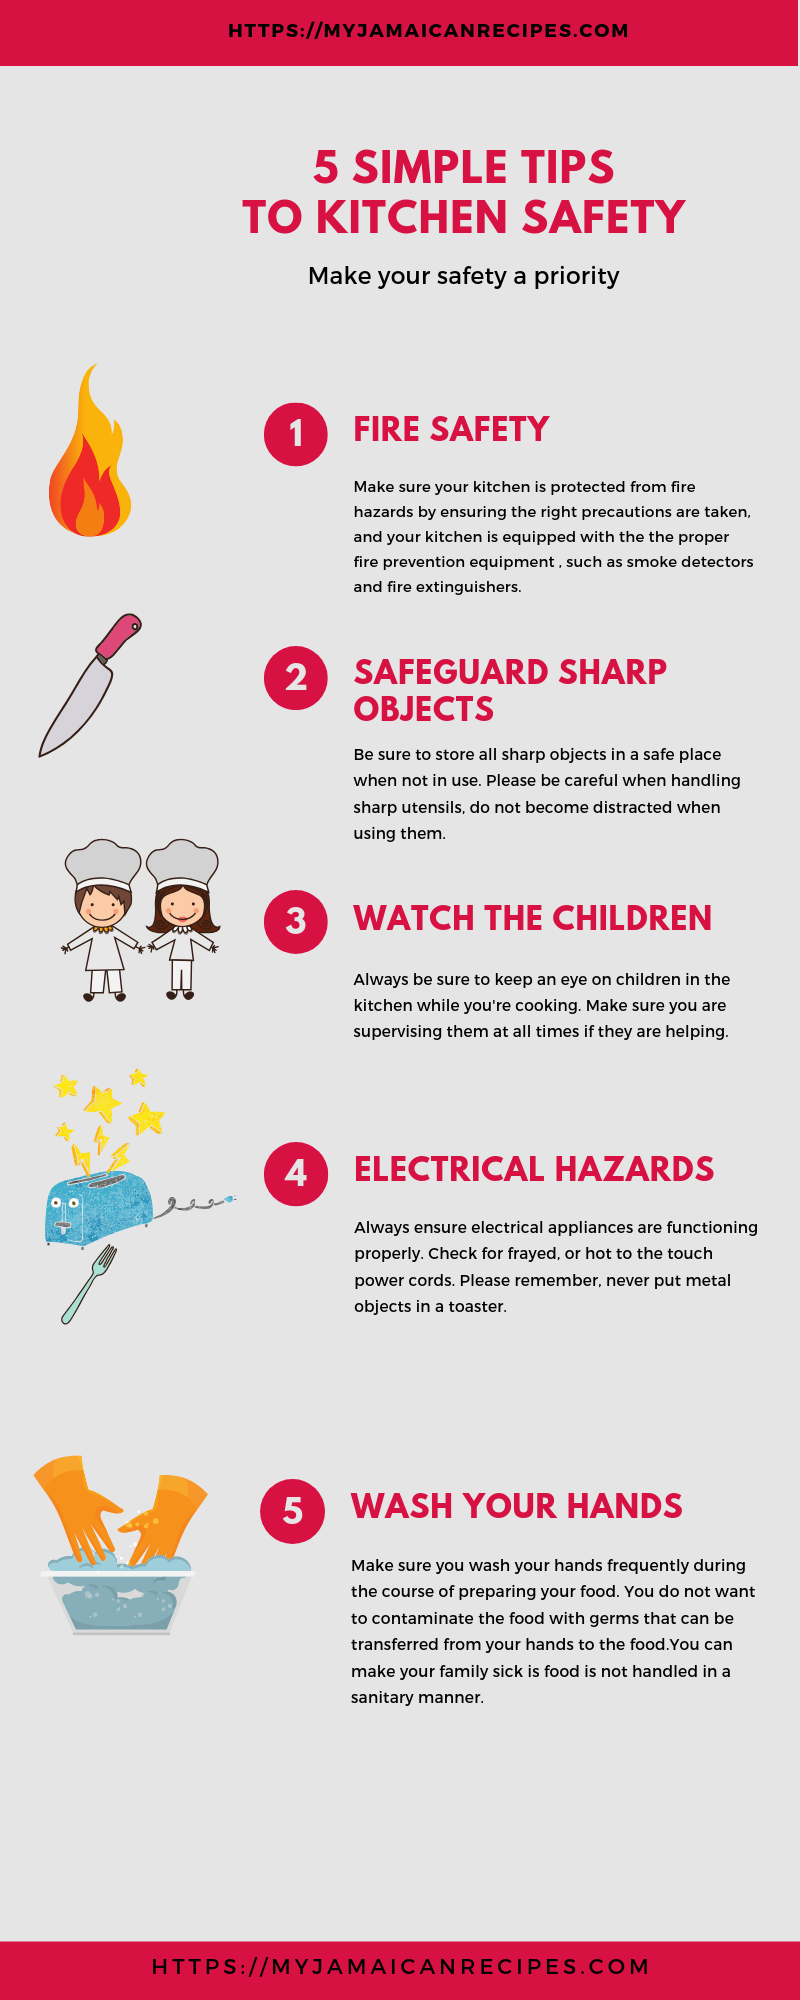 Tips to Kitchen Safety